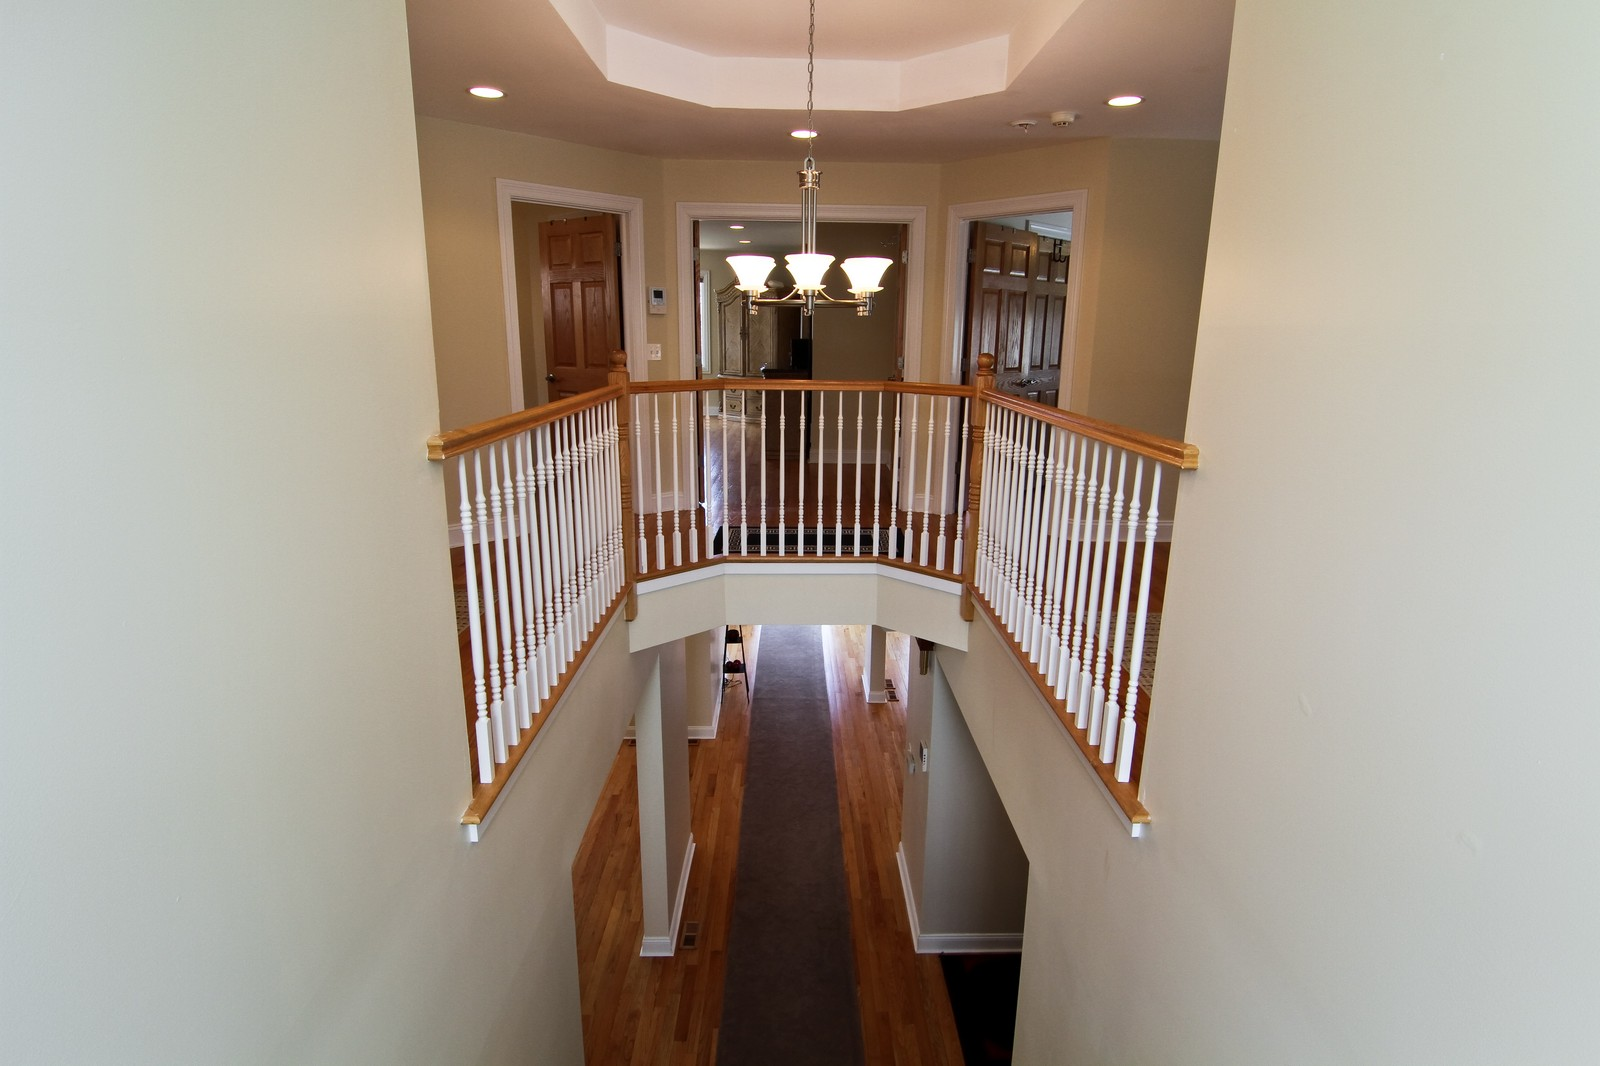 Real Estate Photography - 5626 Chase Ave, Downers Grove, IL, 60516 - Hallway